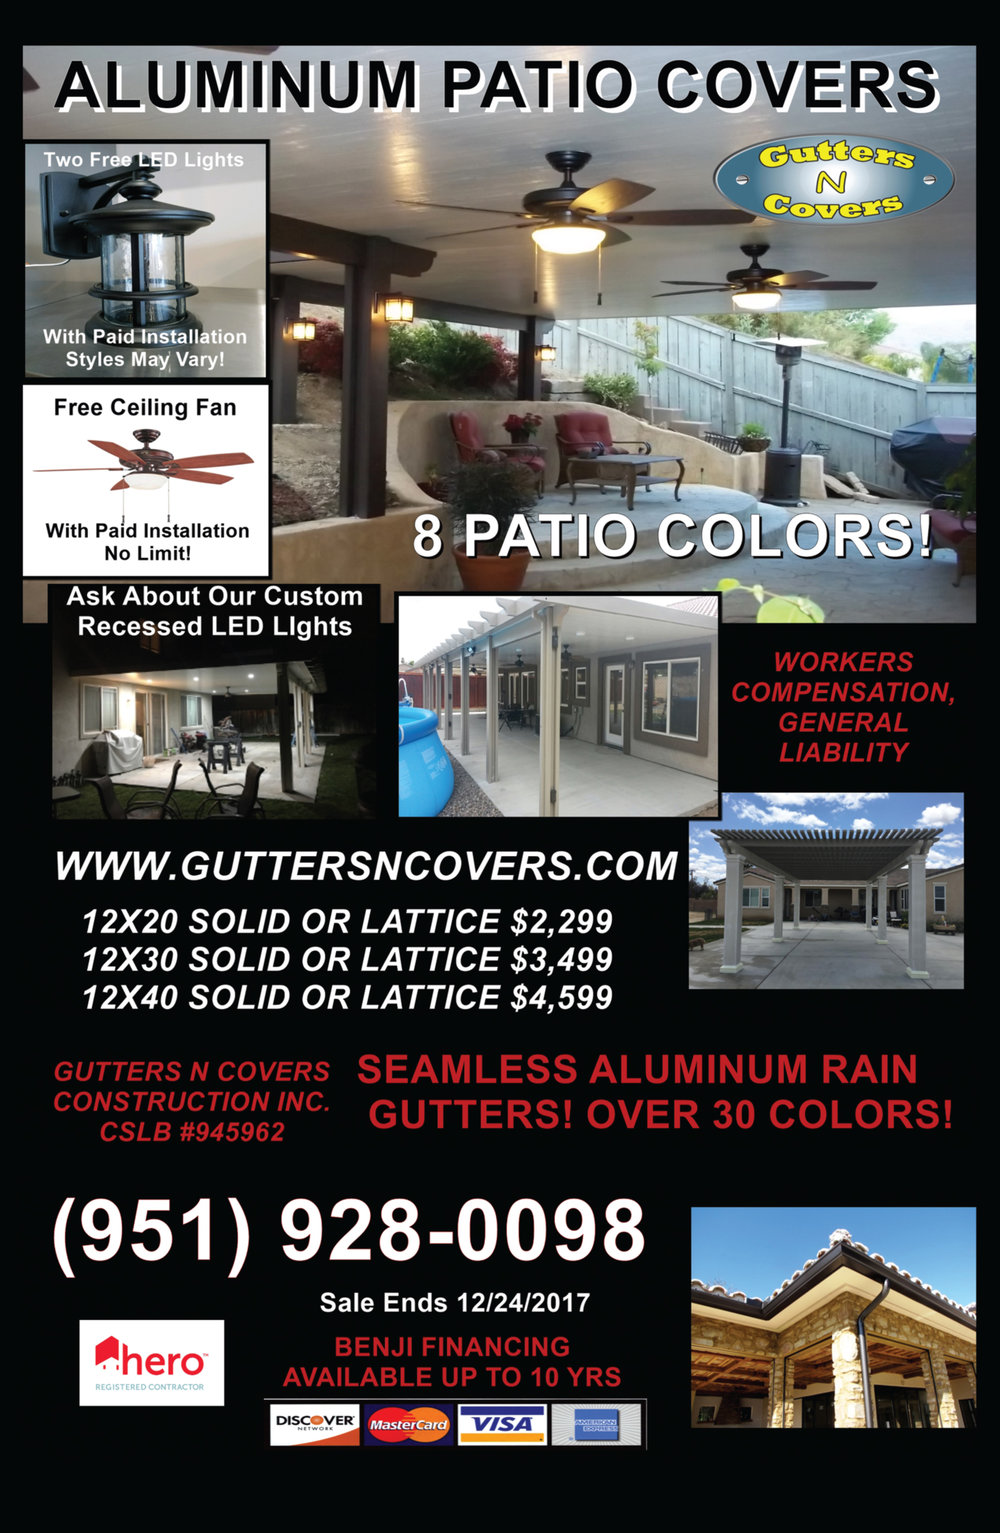 G N C Construction  Specializes In Aluminum Patio Covers And Seamless Aluminum Rain Gutters! With over 25 Years Of Construction Experience       G N C Construction Has The Knowledge To Turn Your Backyard Dreams Into Reality! From Our Experienced Sales Associates, Experienced Installers And A Great Office Staff We Are Confident We Can Accommodate You Backyard Needs! We Build Over 1200 Patio Covers Per Year Making Us One Of The Biggest Dealers In The Area! With Our Competitive Pricing You Can Put Your Trust In G N C Construction! We Don't Take A Dime From You Until Your Patio Is Complete Just Sign And Go!    Seamless Aluminum Rain Gutters Looking To Direct The Water From Your Home Or Your Planters, Consider Seamless Aluminum Rain Gutters! With Over 60 Colors To Match Your Existing Paint Colors On Your Home! Or Ad A Slight Different Color To Give A Custom Look! Prevent The Stucco Staining By Adding A Beautiful Crown Molding Look To Your Home With Seamless Aluminum Rain Gutters! Whatever You Need To Accomplish, Gutters N Covers Experienced Estimators Can Make It Happen!   Make Sure The Contractor You Hire Carries Workers Compensation And General Liability! Workers Compensation Protects You The Home Owner From Being Held Liable If A Worker Gets Hurt On Your Property! General Liability Protects You If The Contractor Causes Damage To Your Home From Installation Or After Installation!   High Desert Patio Covers, Apple Valley Patio Covers, Hesperia Patio Covers, Oak Hills Patio Covers, Victorville Patio Covers, Phelan Patio Covers.